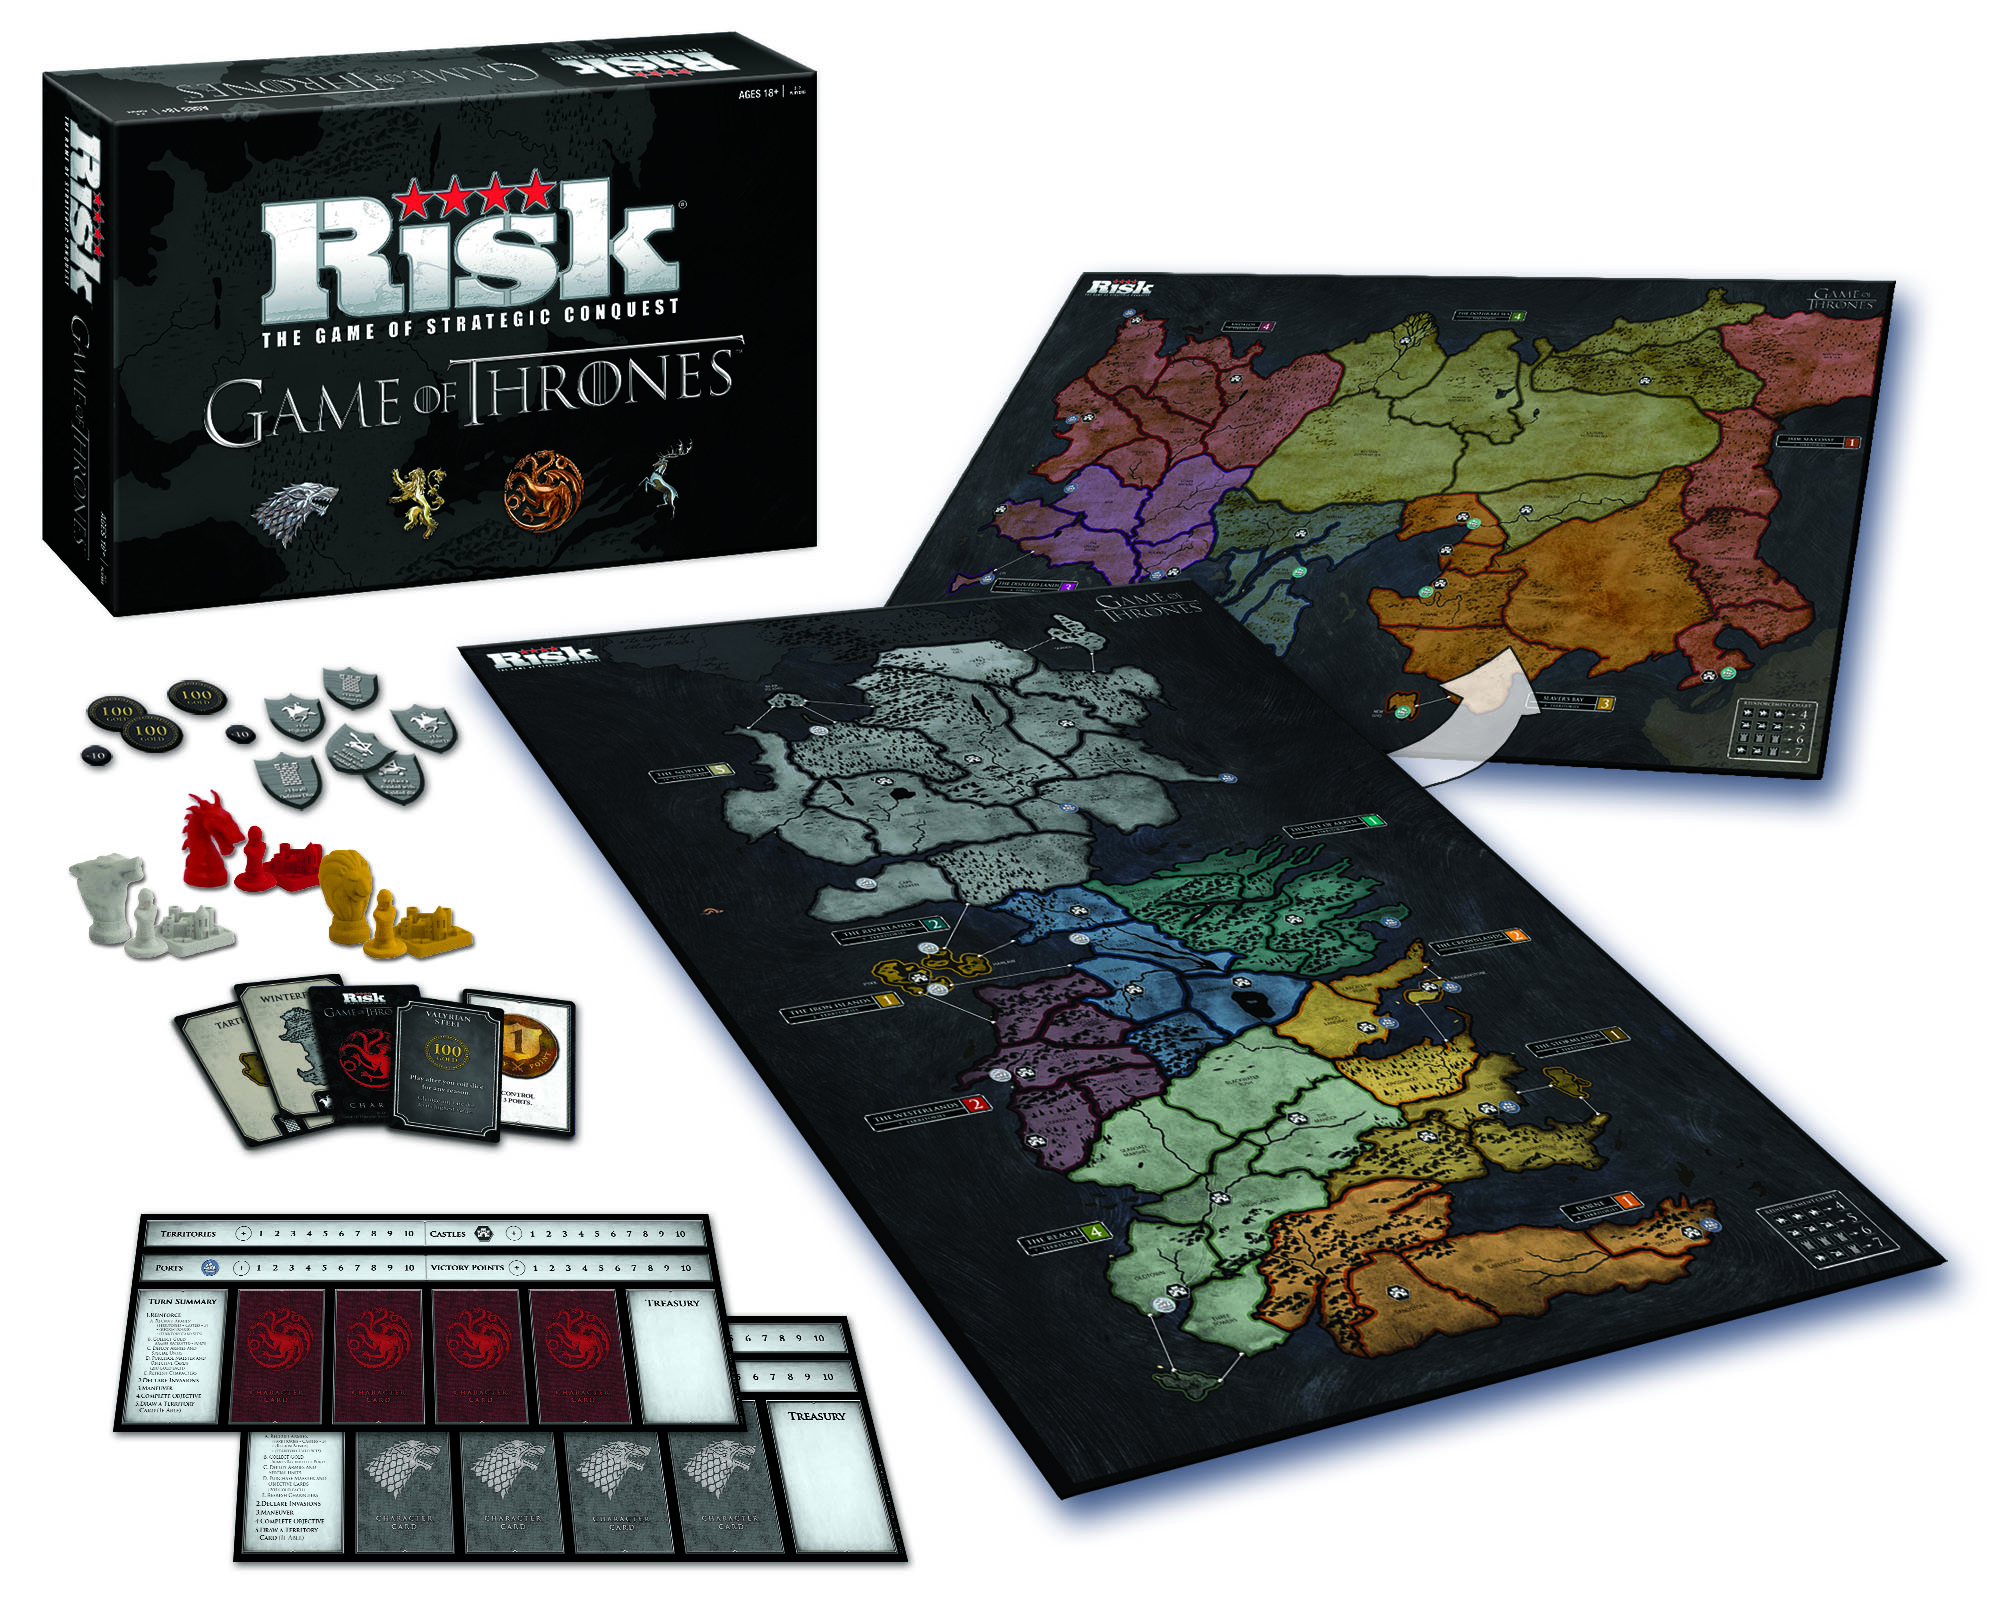 Take a look at the Game of Thrones Risk game